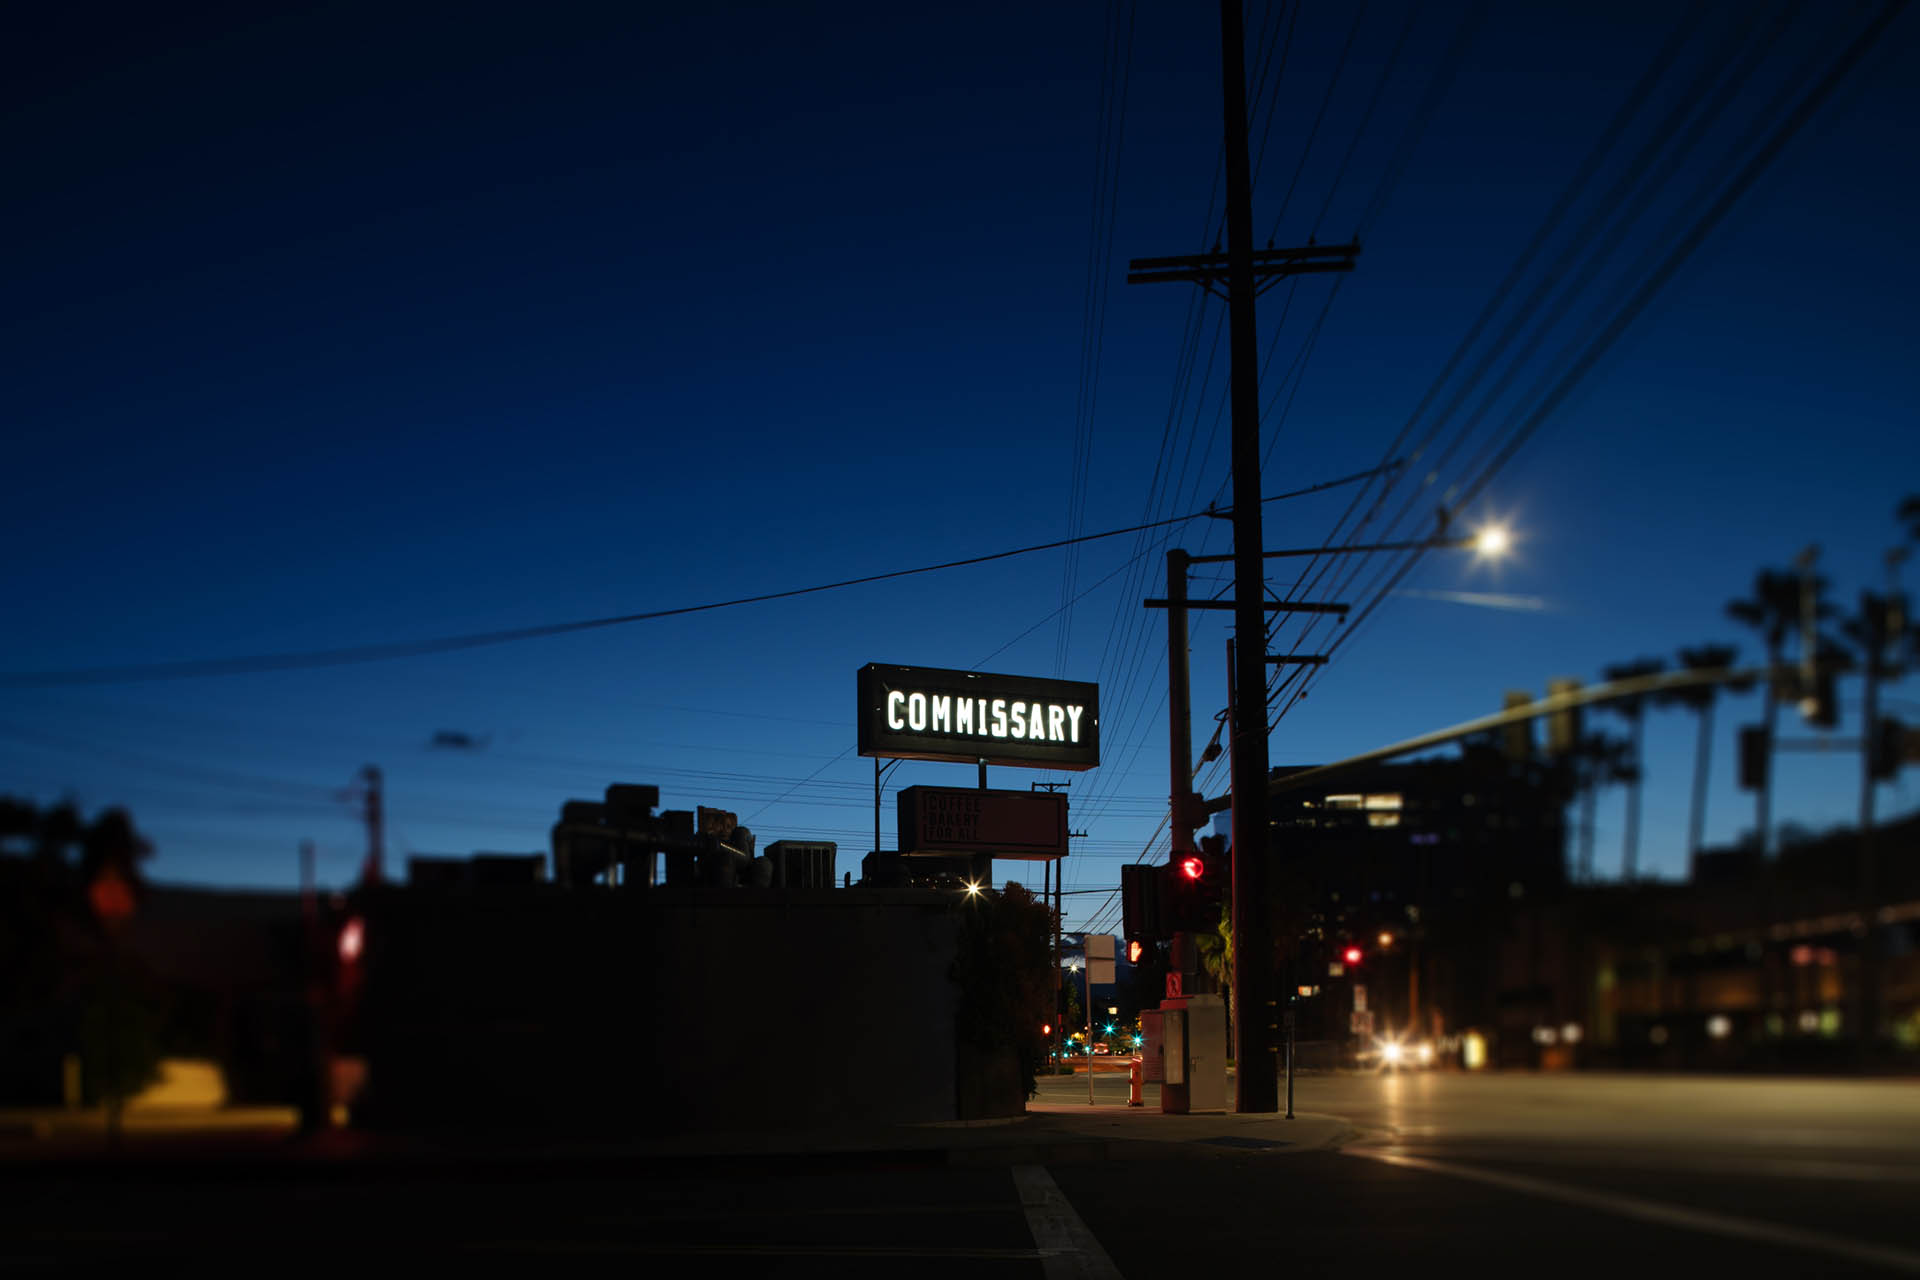 The Burbank Coffee Commissary sign lit up at night